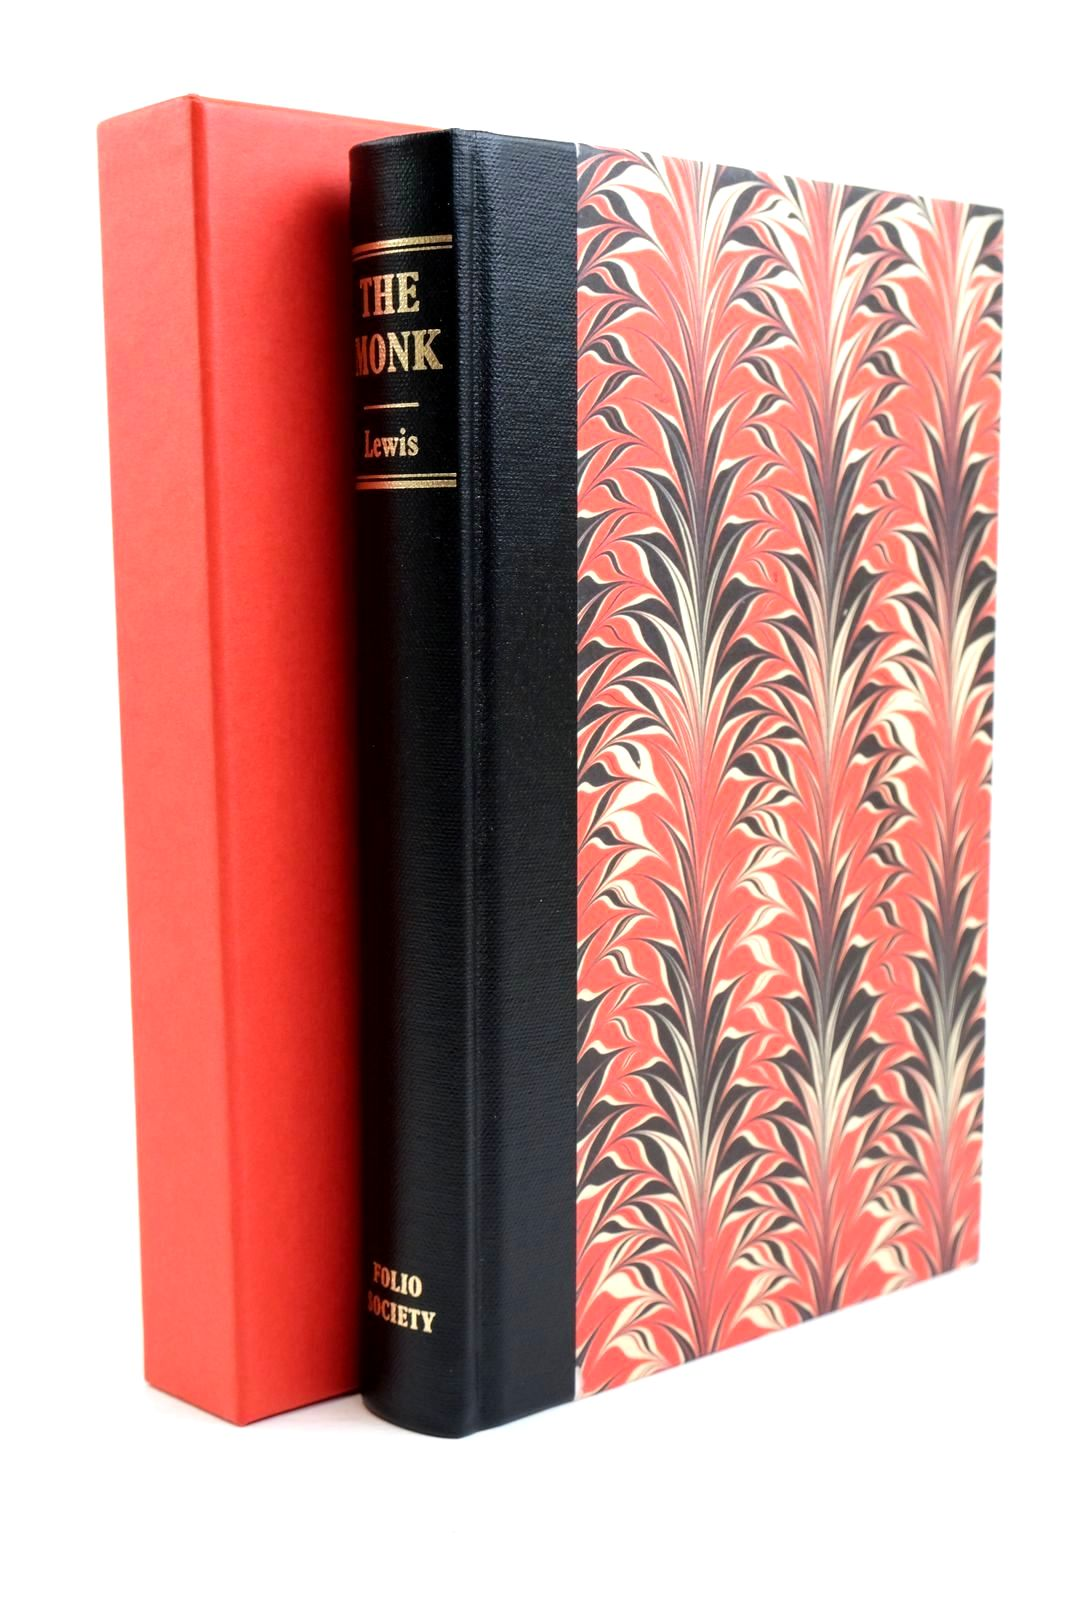 Photo of THE MONK written by Lewis, Matthew illustrated by Tute, George published by Folio Society (STOCK CODE: 1320858)  for sale by Stella & Rose's Books